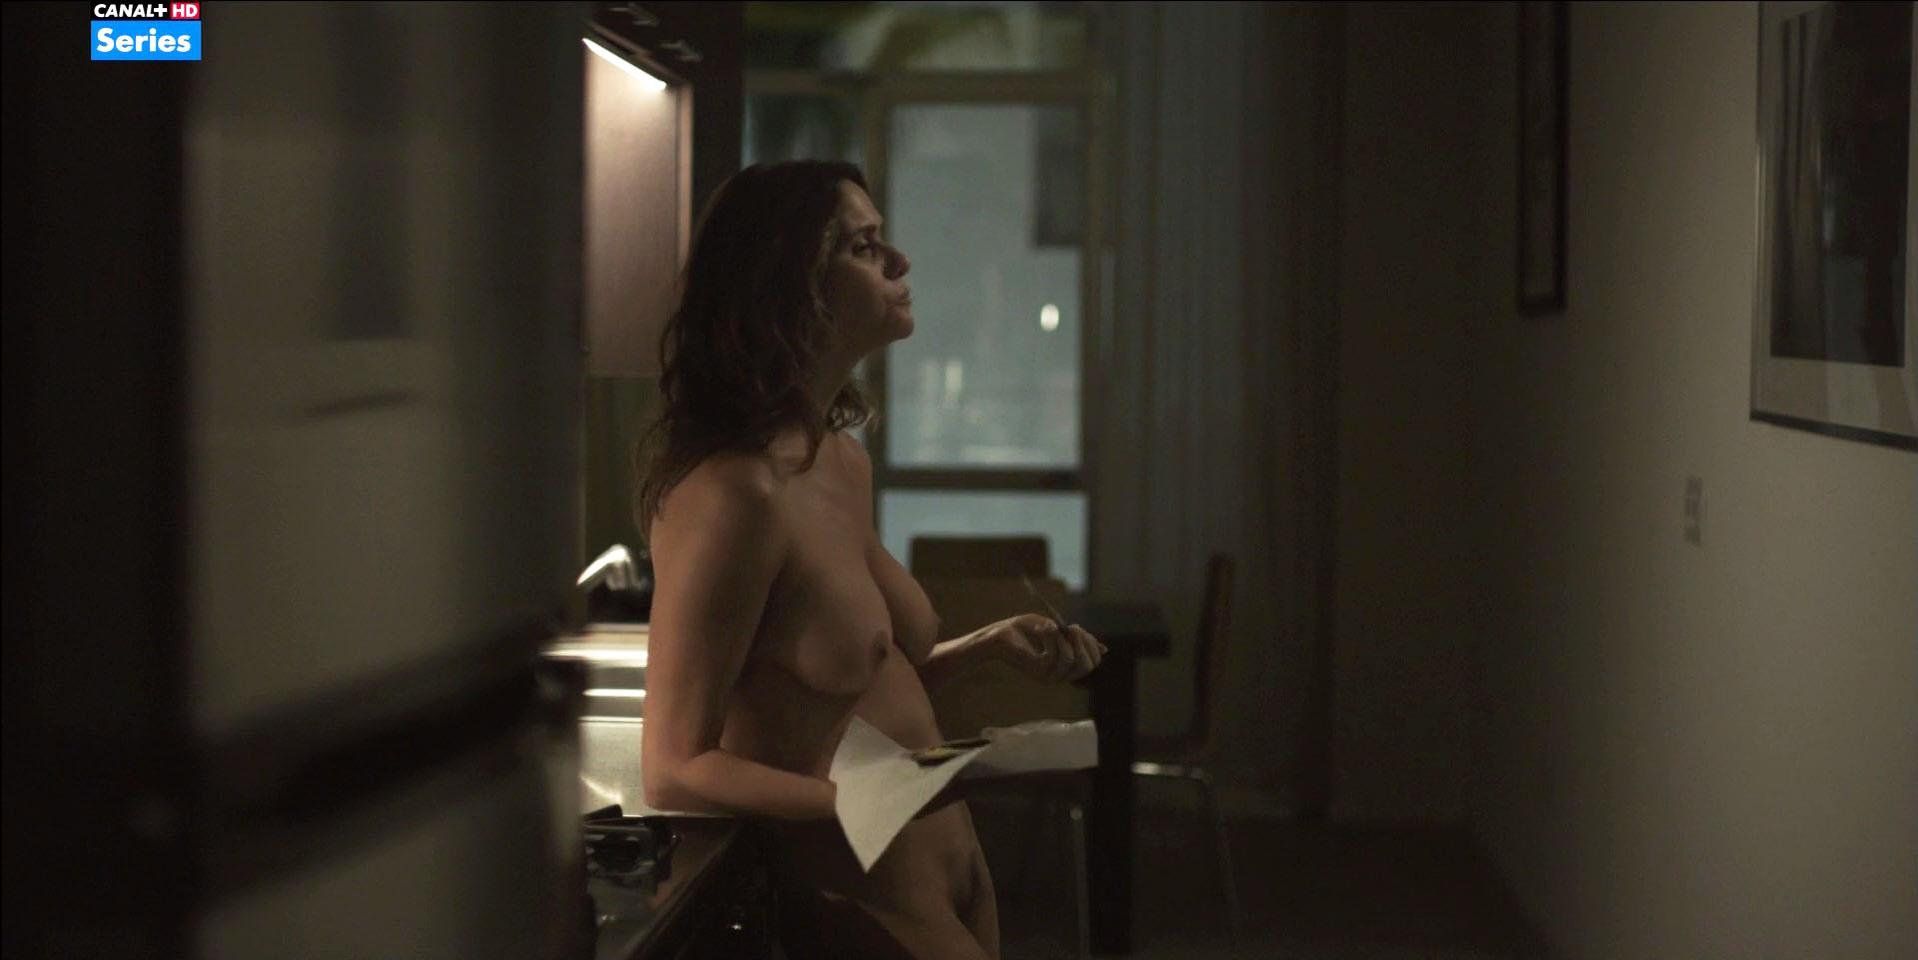 Amy Landecker nude - Transparent s02e04 (2015)